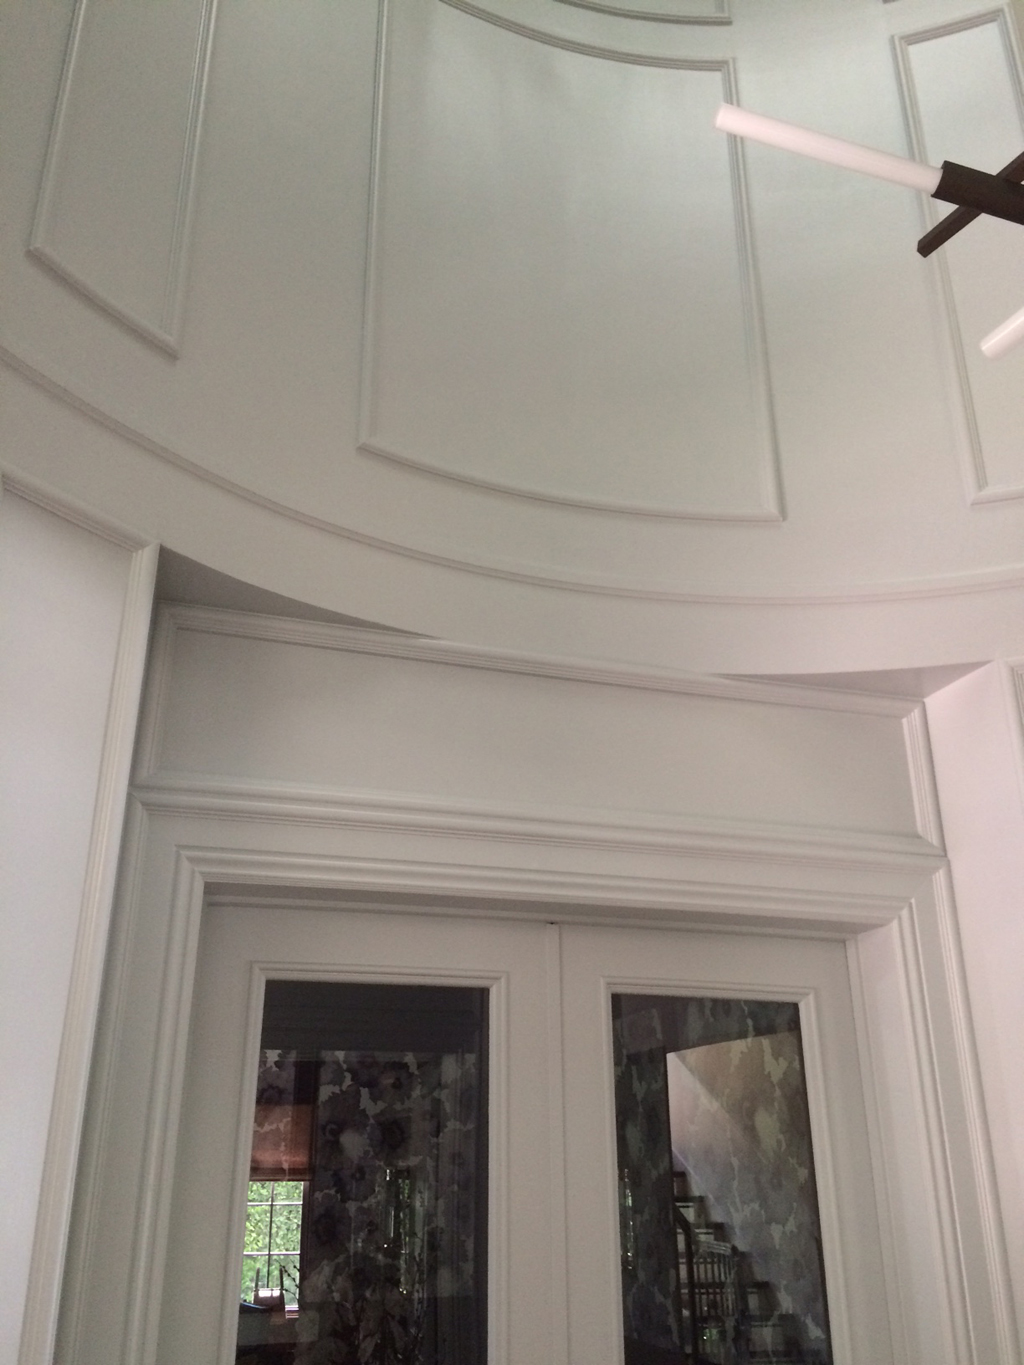 Custom main entry millwork - Beams, radius applied moldings & beams - Brentwood residence